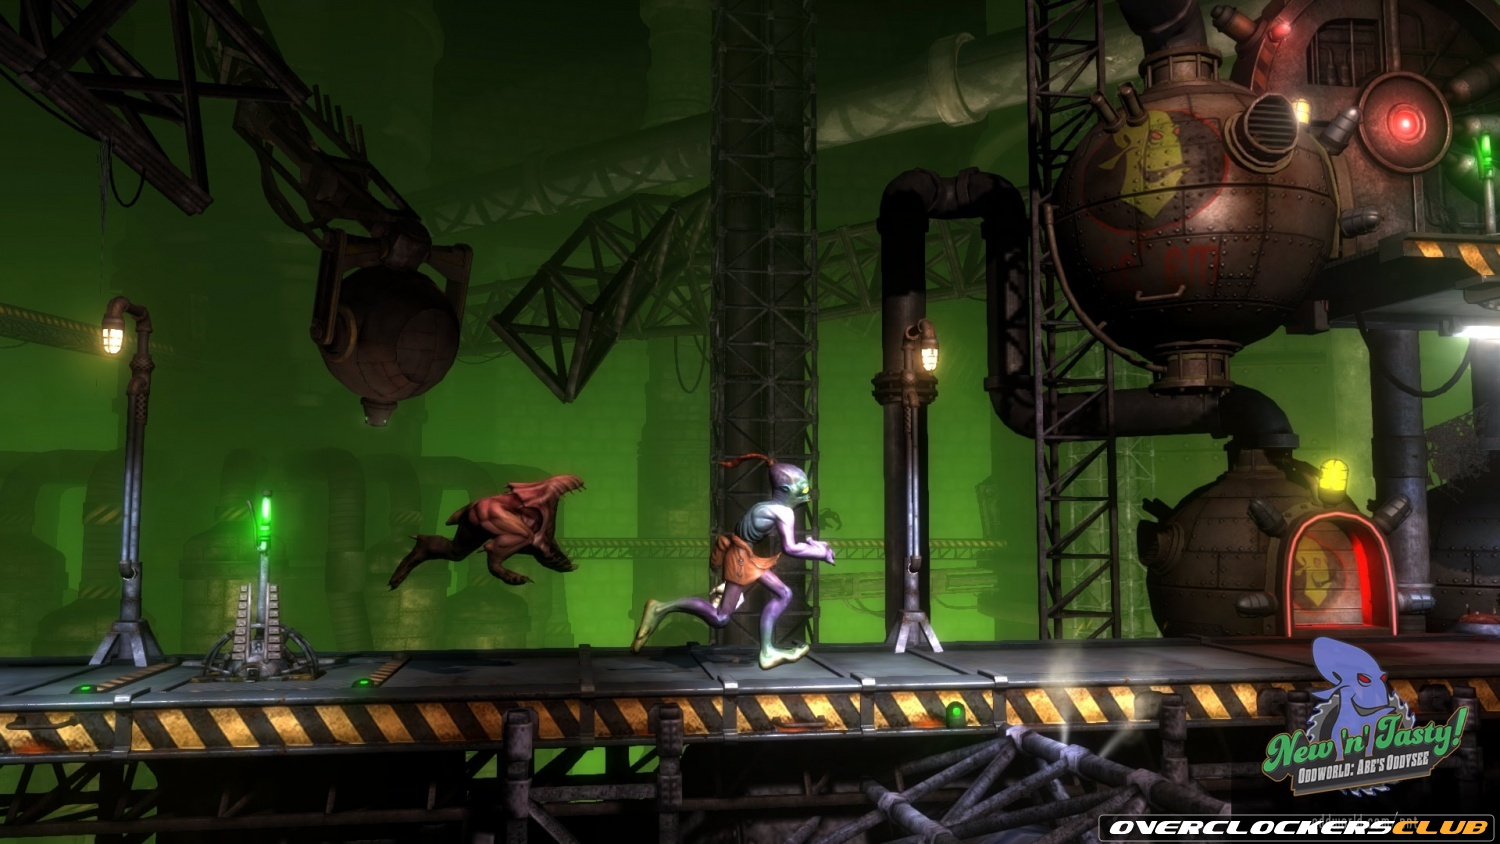 New Screenshots and Pricing Information Released for Oddworld: New 'n' Tasty; Release Date Announcement Coming Soon